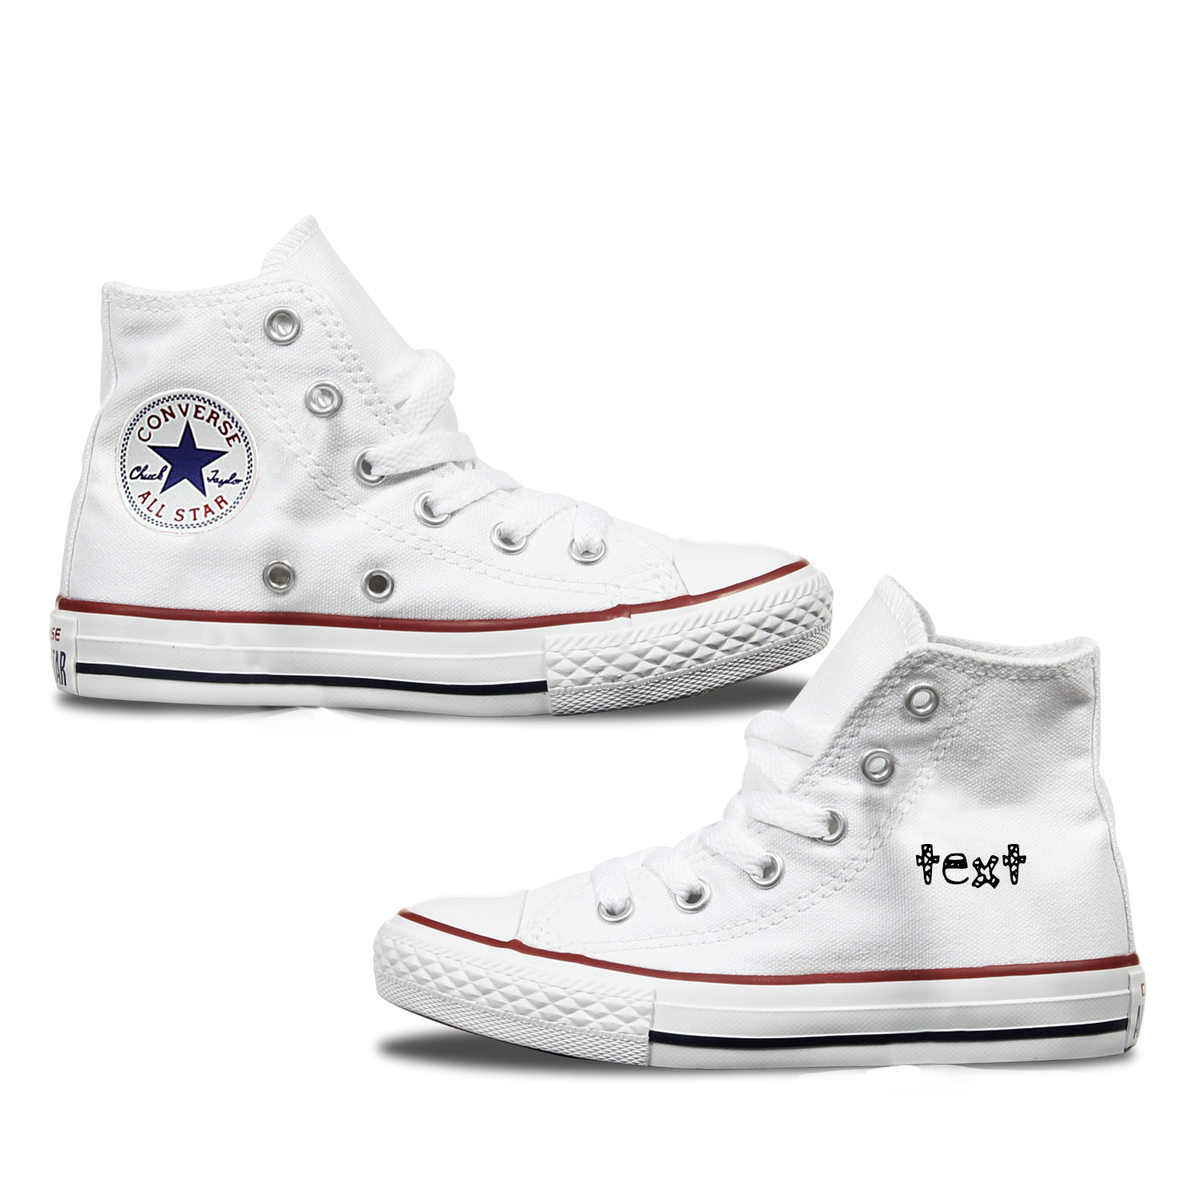 Kids Custom Personalised Converse